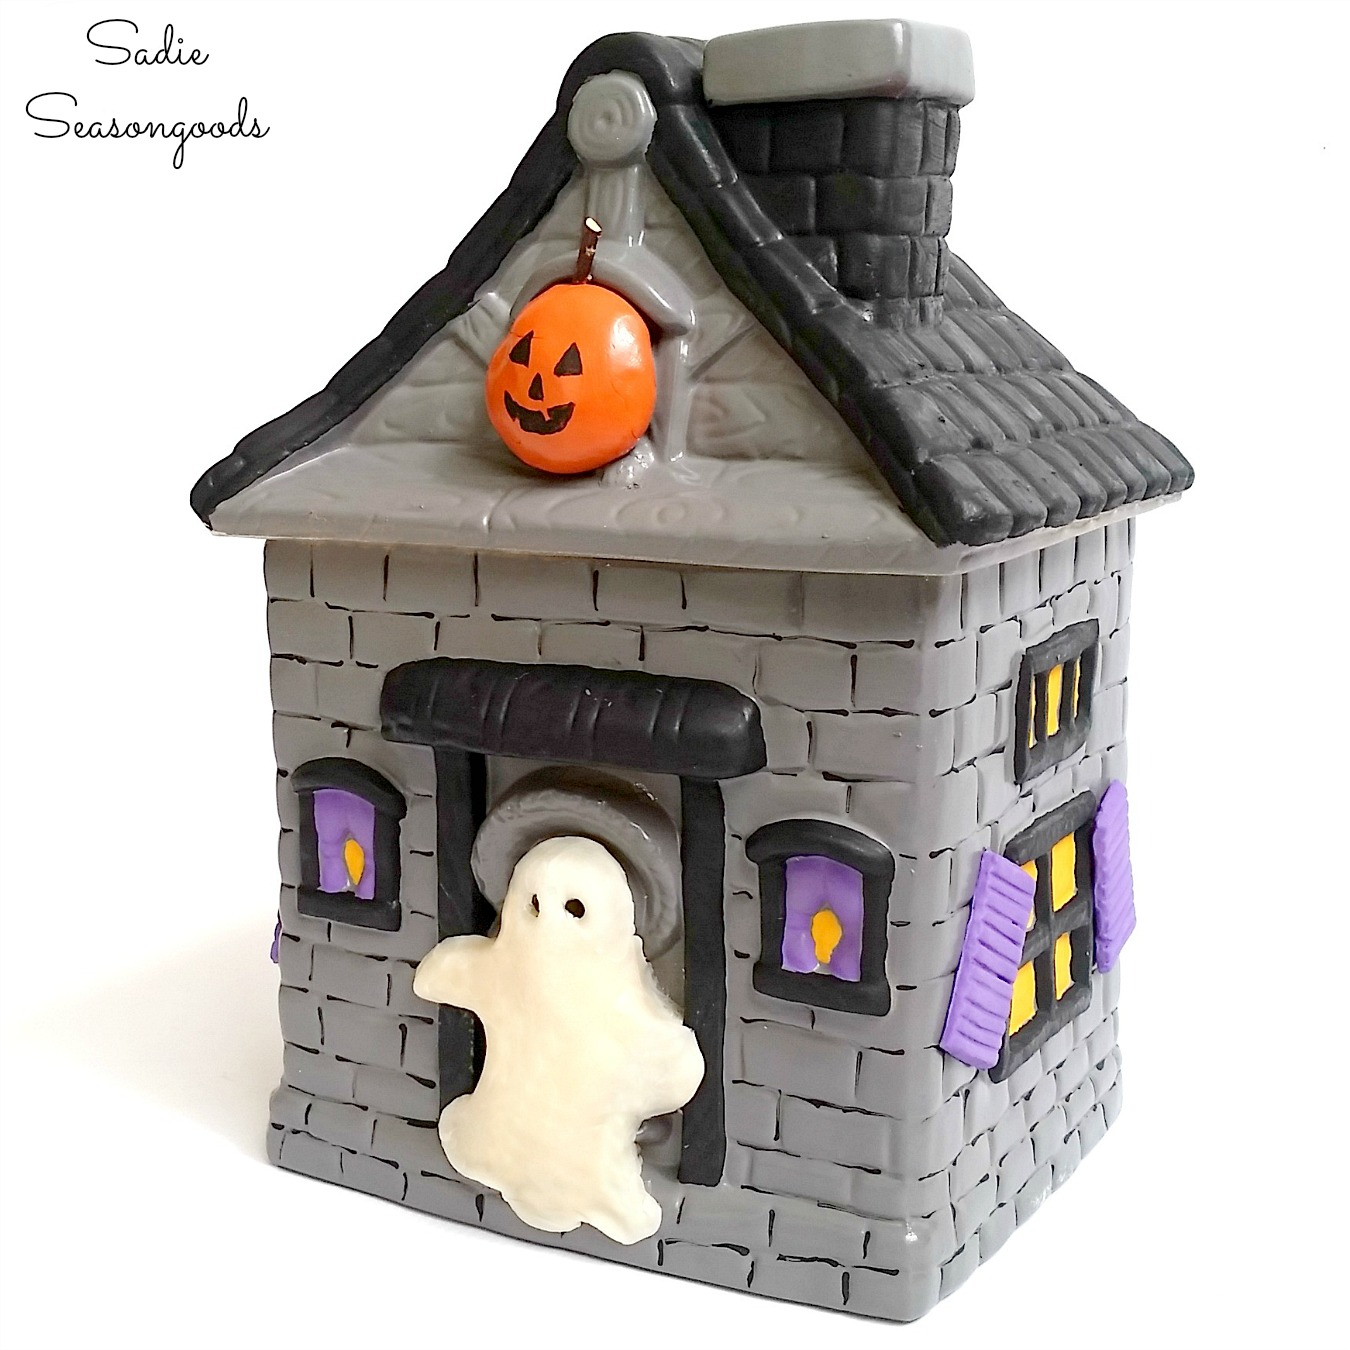 Halloween cookie jar and haunted house decor from giving a Halloween makeover to a vintage cookie jar by Sadie Seasongoods